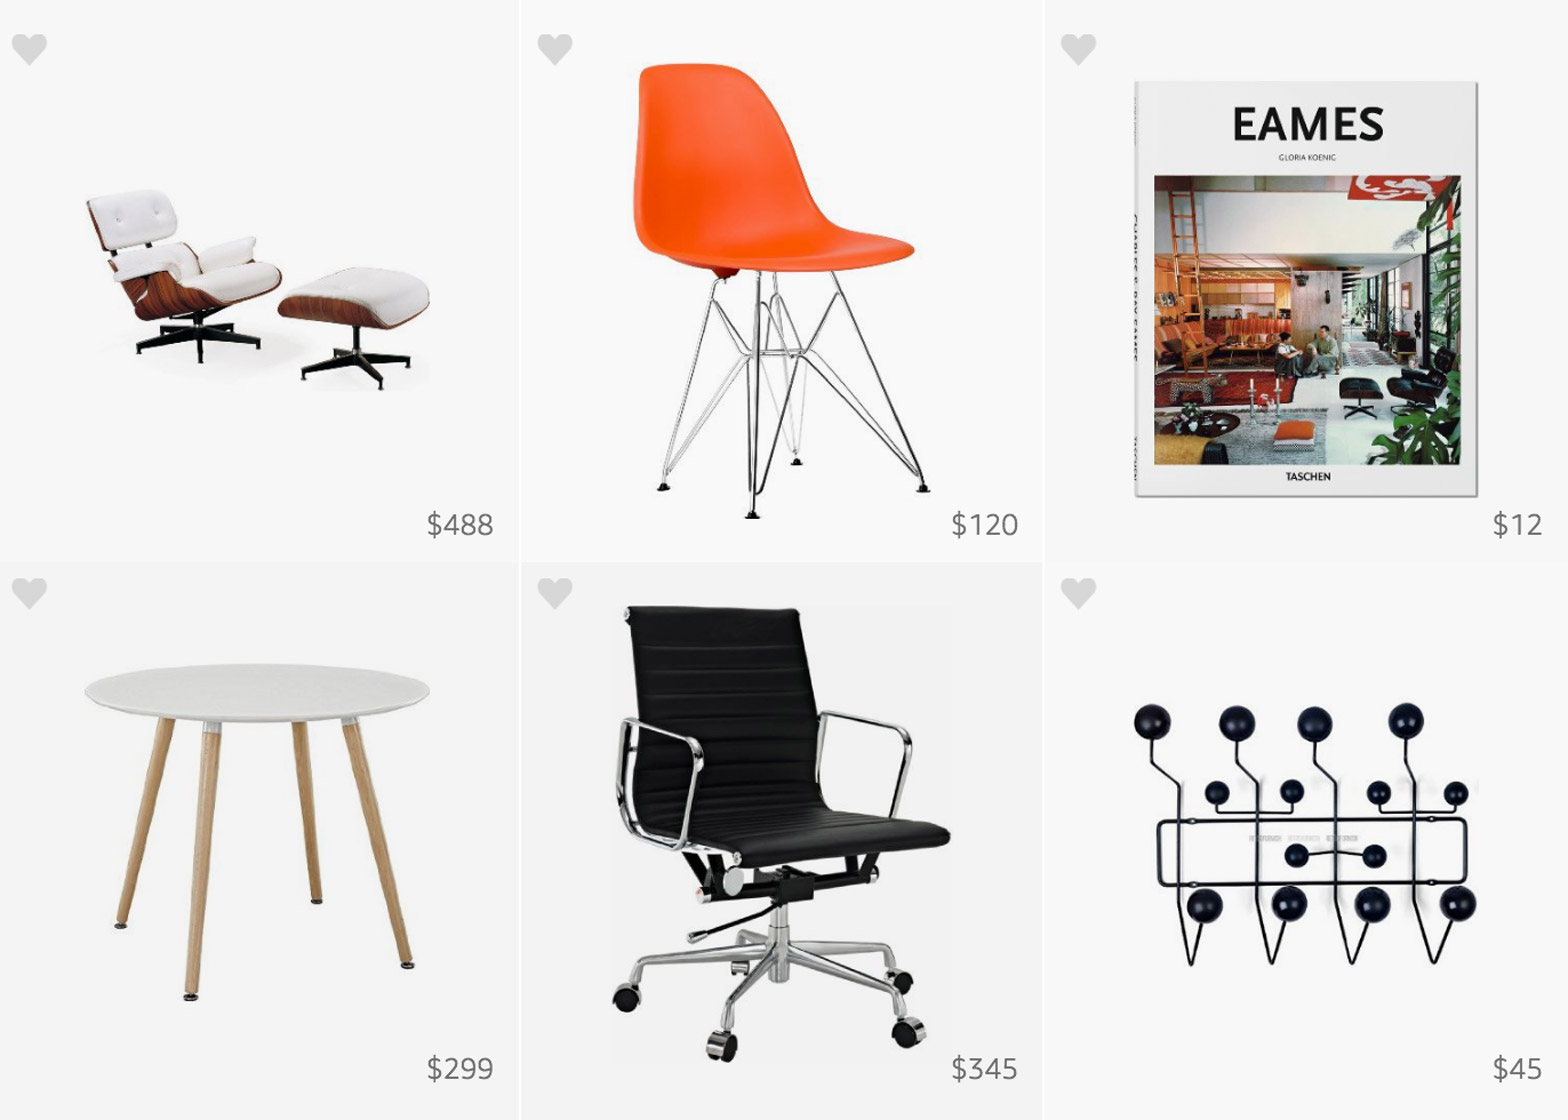 eames chair amazon white dining room chairs celebrates birthday with pinboard of knockoffs charles